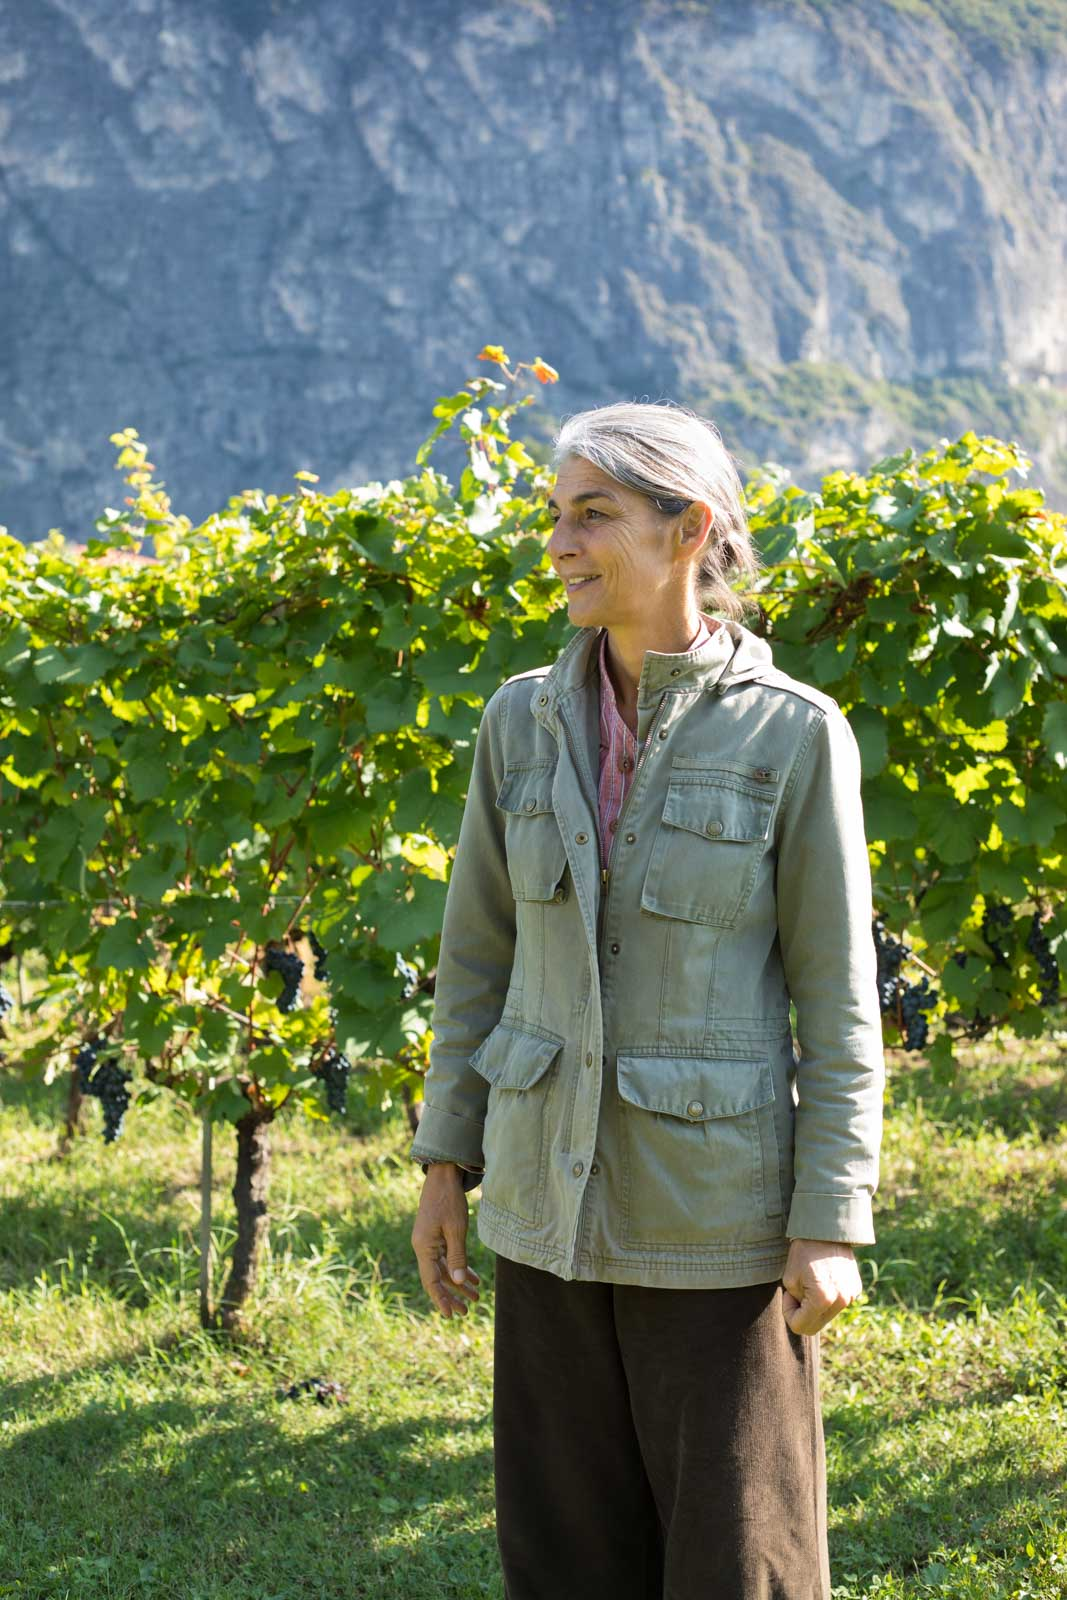 """Elisabetta Foradori in her """"forest of grapes"""" in Mezzolombardo, Italy. ©Kevin Day/Opening a Bottle"""